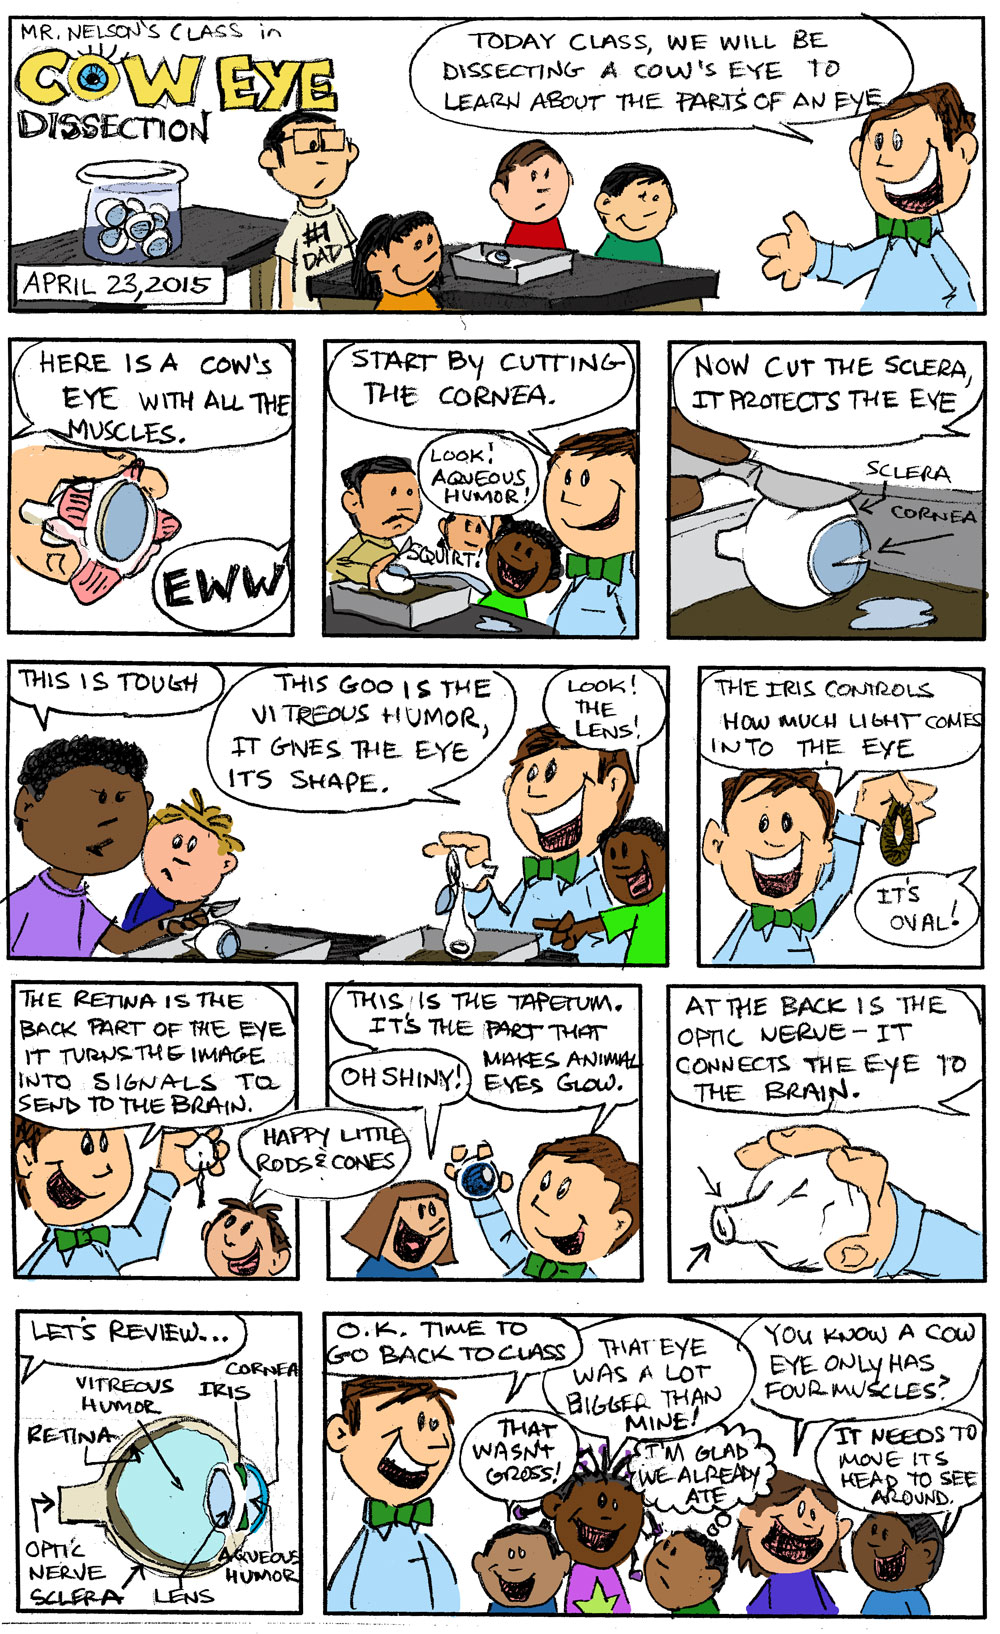 Comics in the Classroom- Third Graders & Cow's Eyes